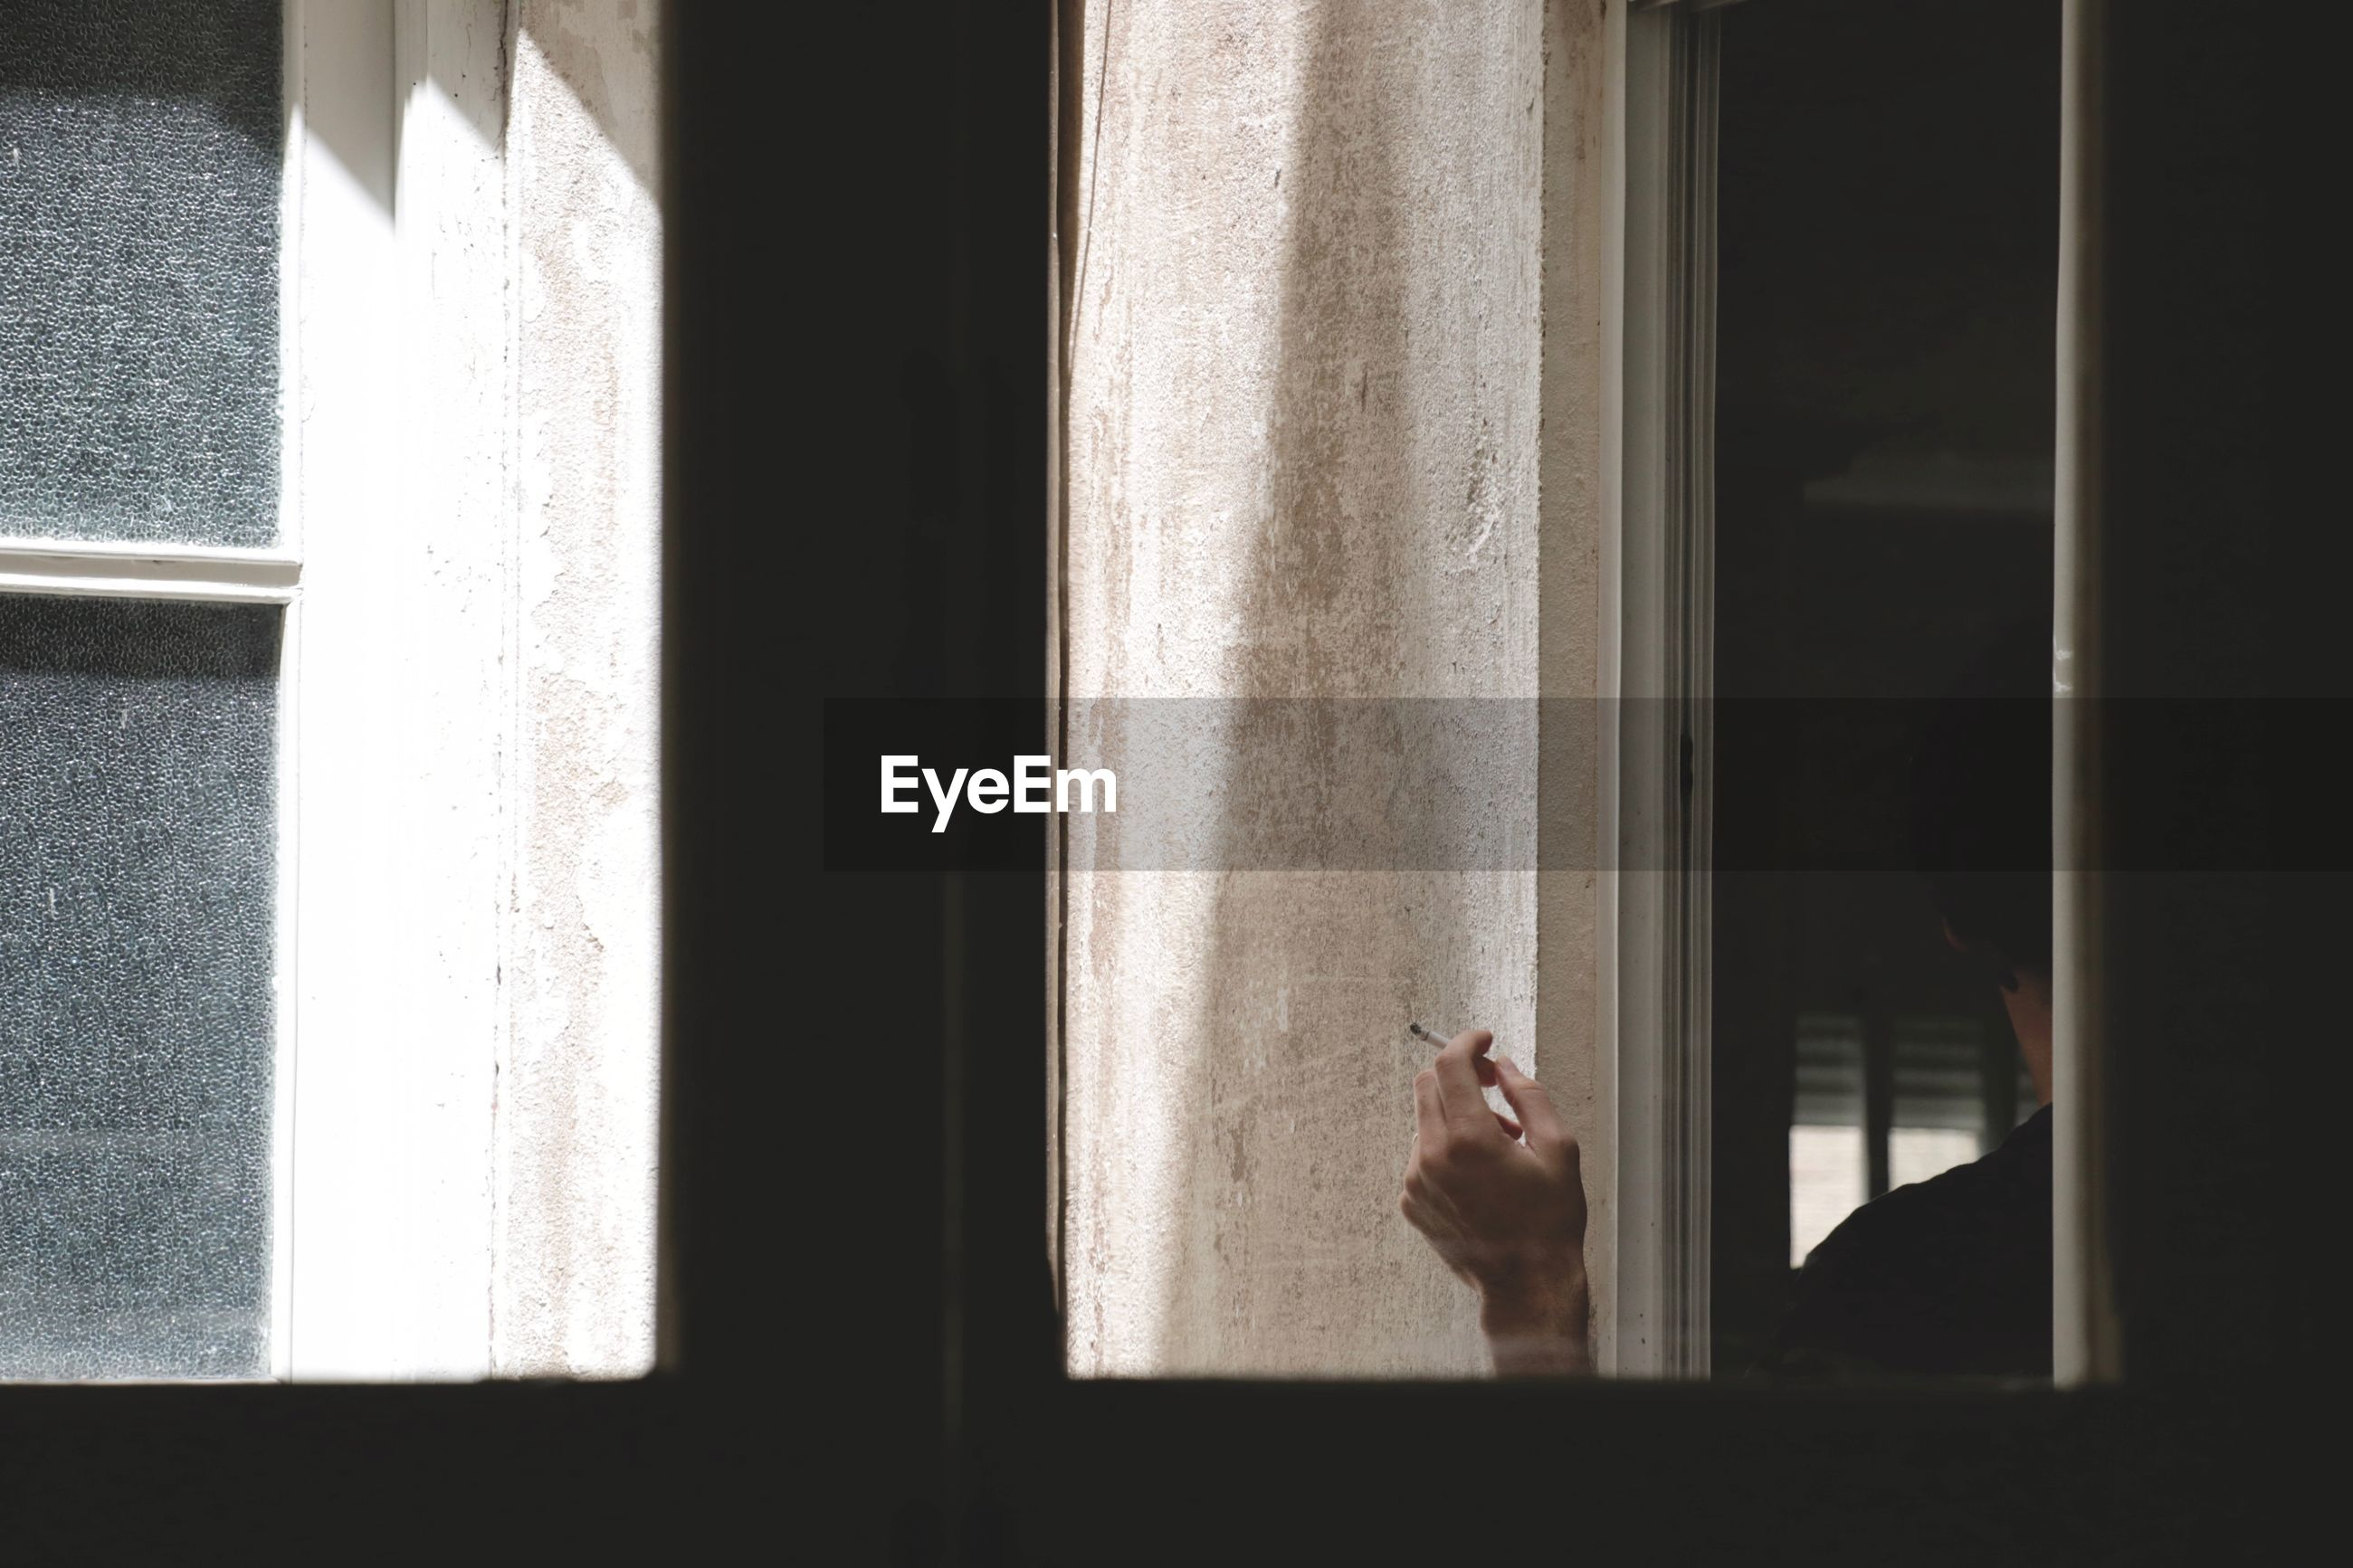 Cropped image of man holding cigarette seen through glass window